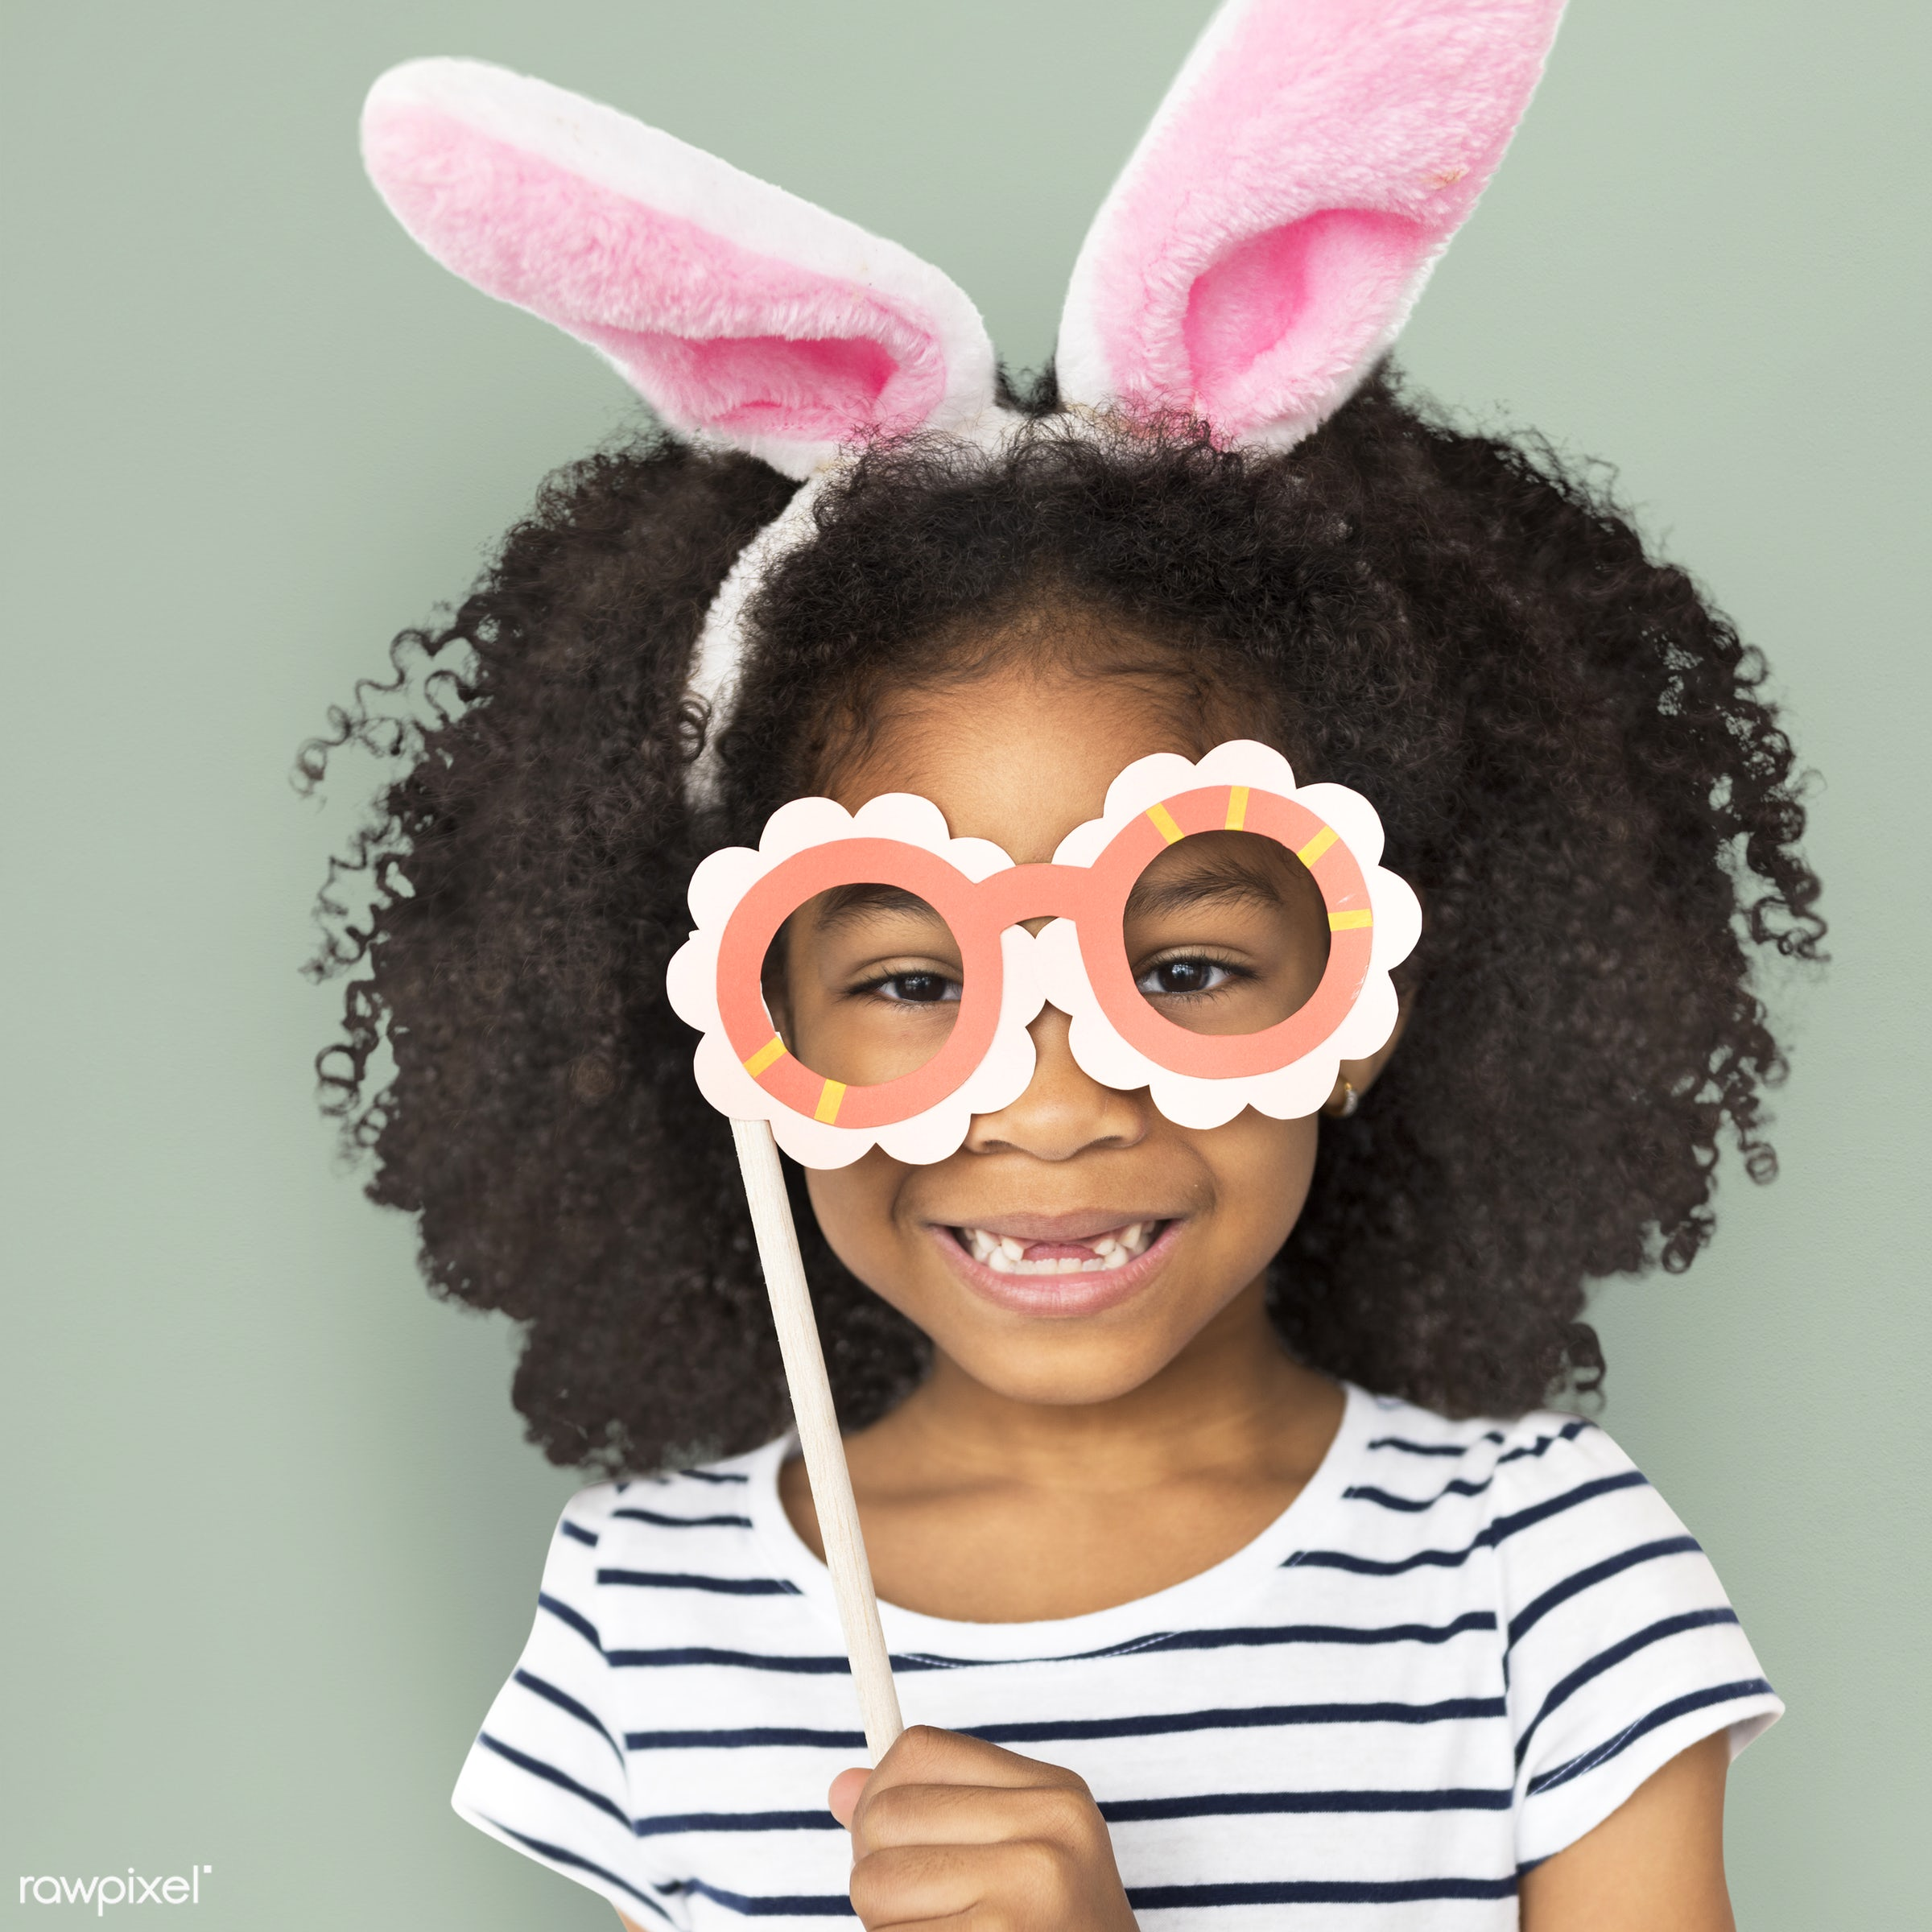 studio, expression, person, little, cute, people, child, girl, headband, happy, casual, smile, cheerful, smiling, isolated,...